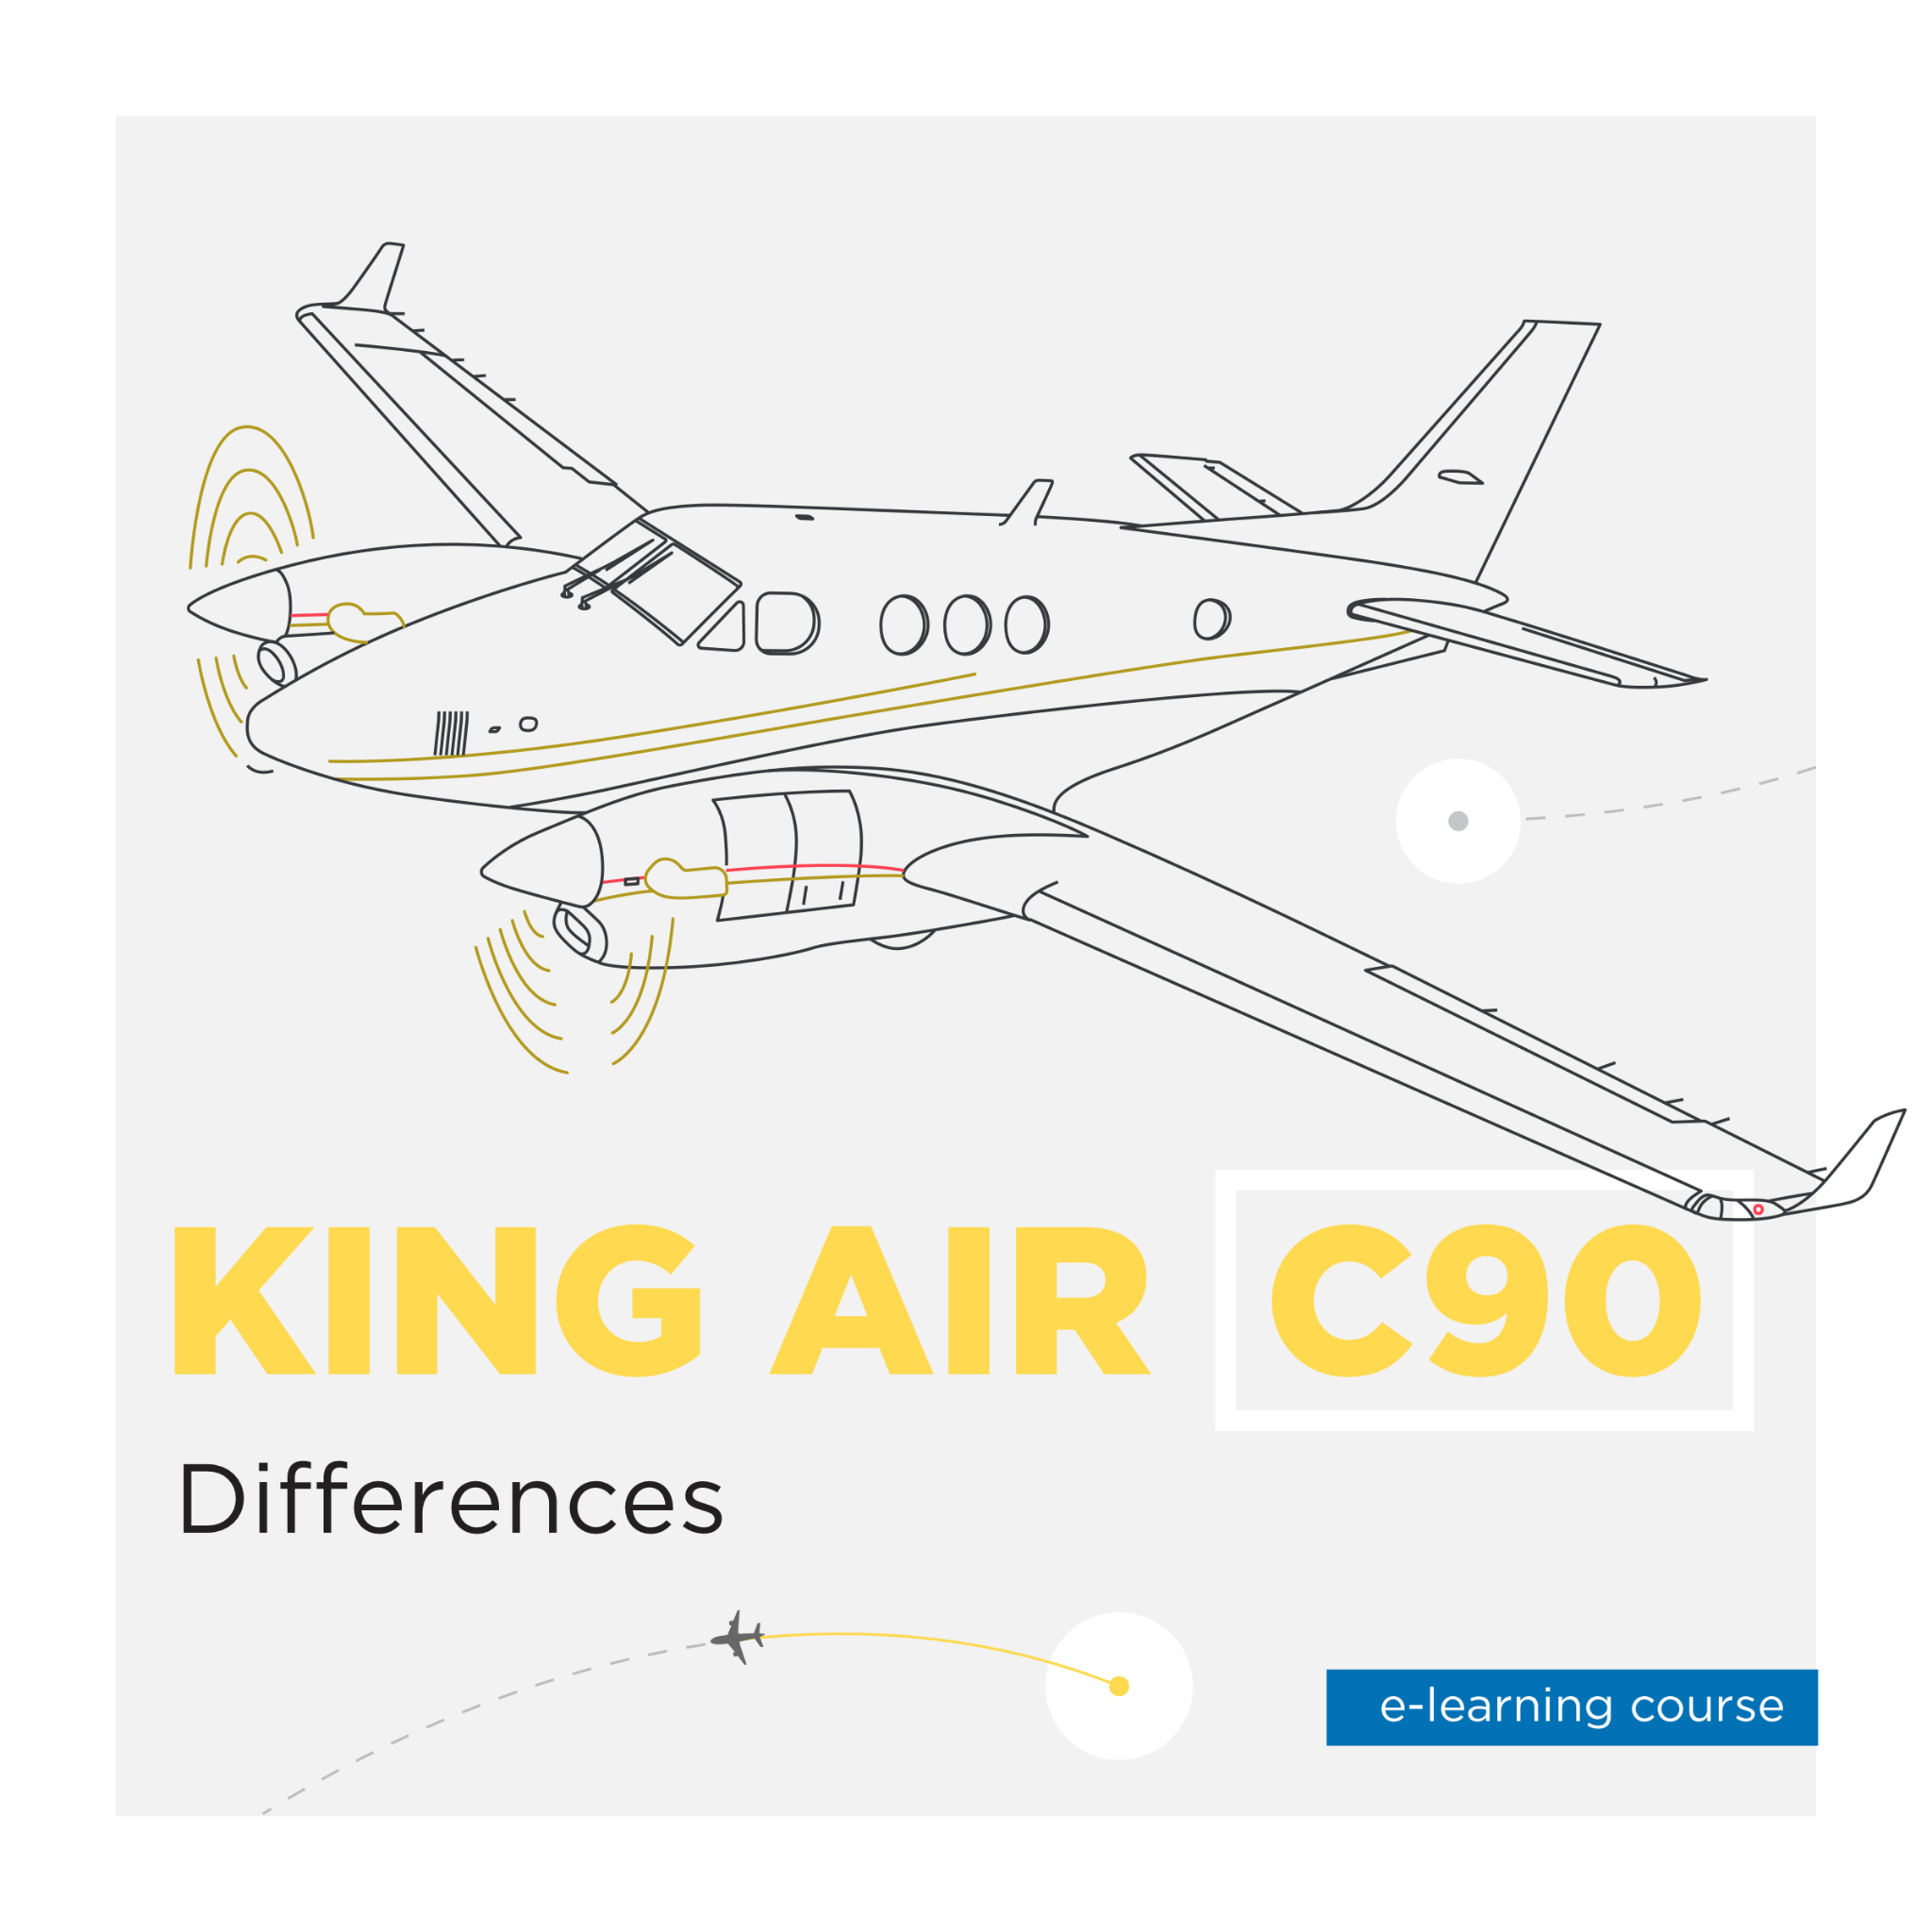 King Air Differences BE-C90 E-Learning Course